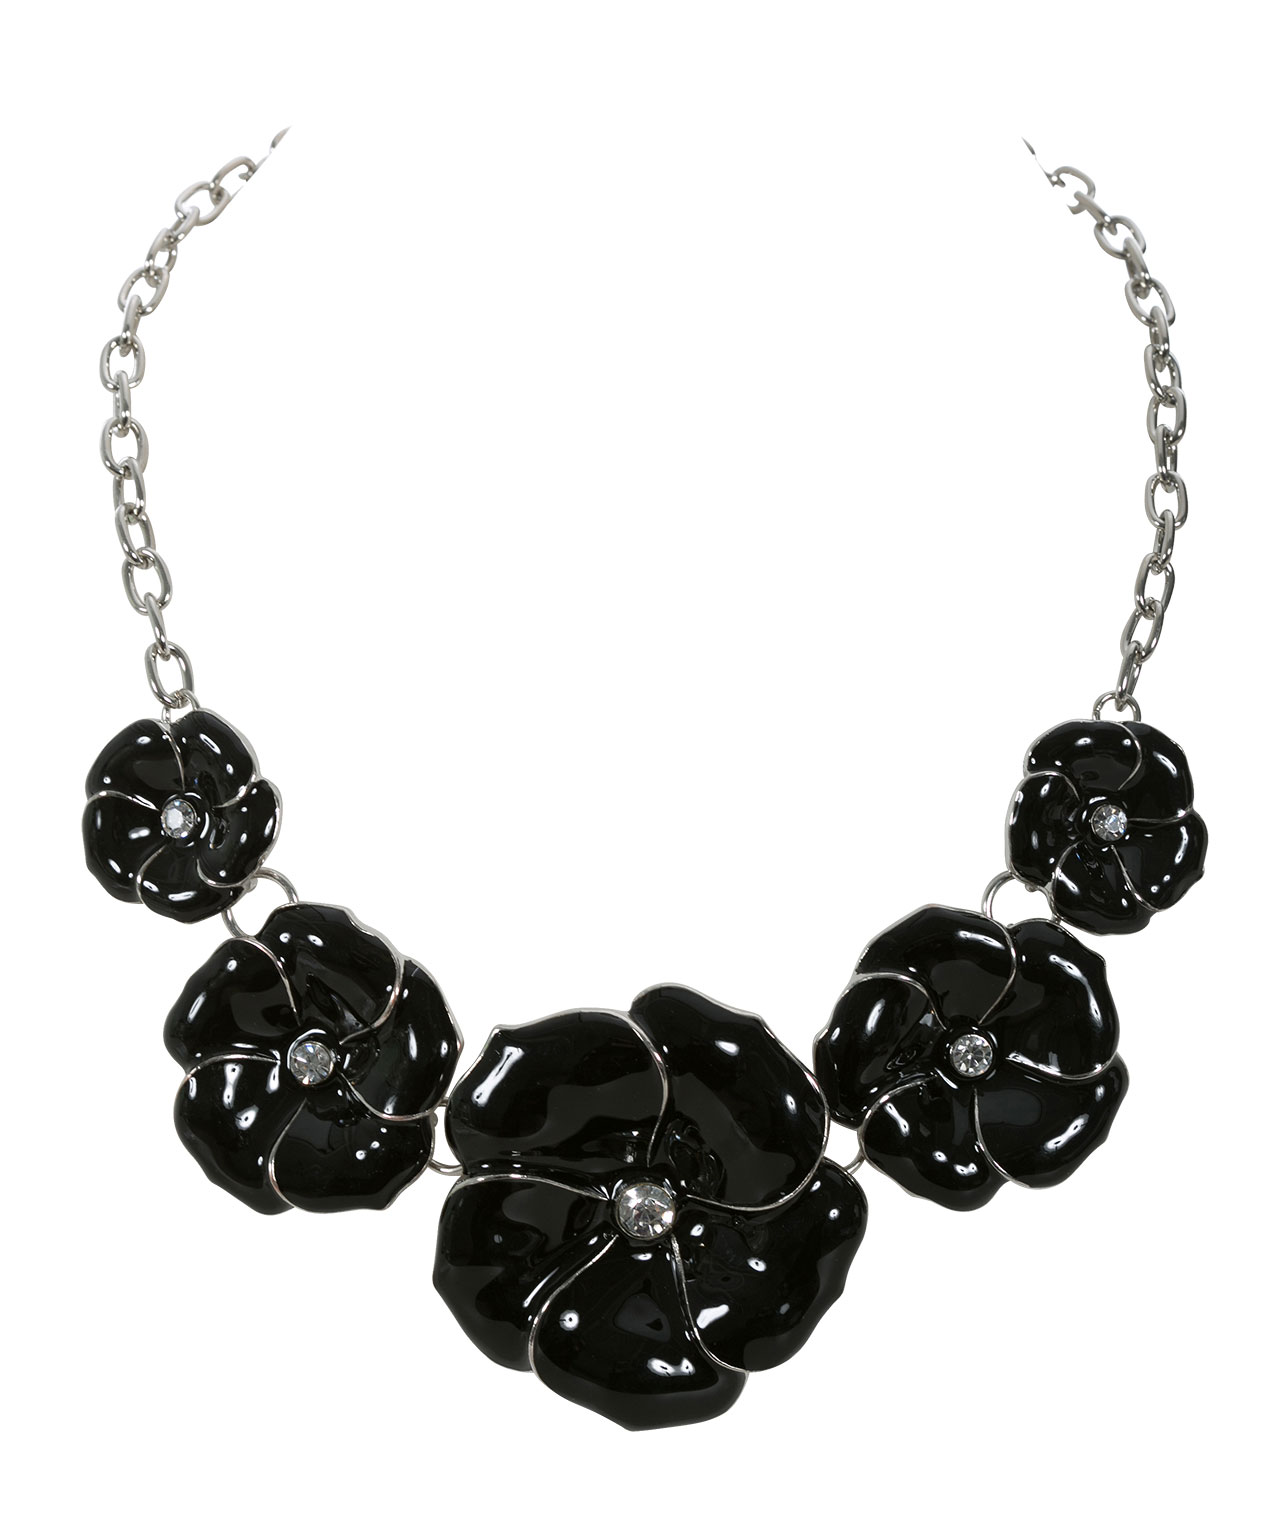 necklace gemour ny york black products downtown kiera cut new square